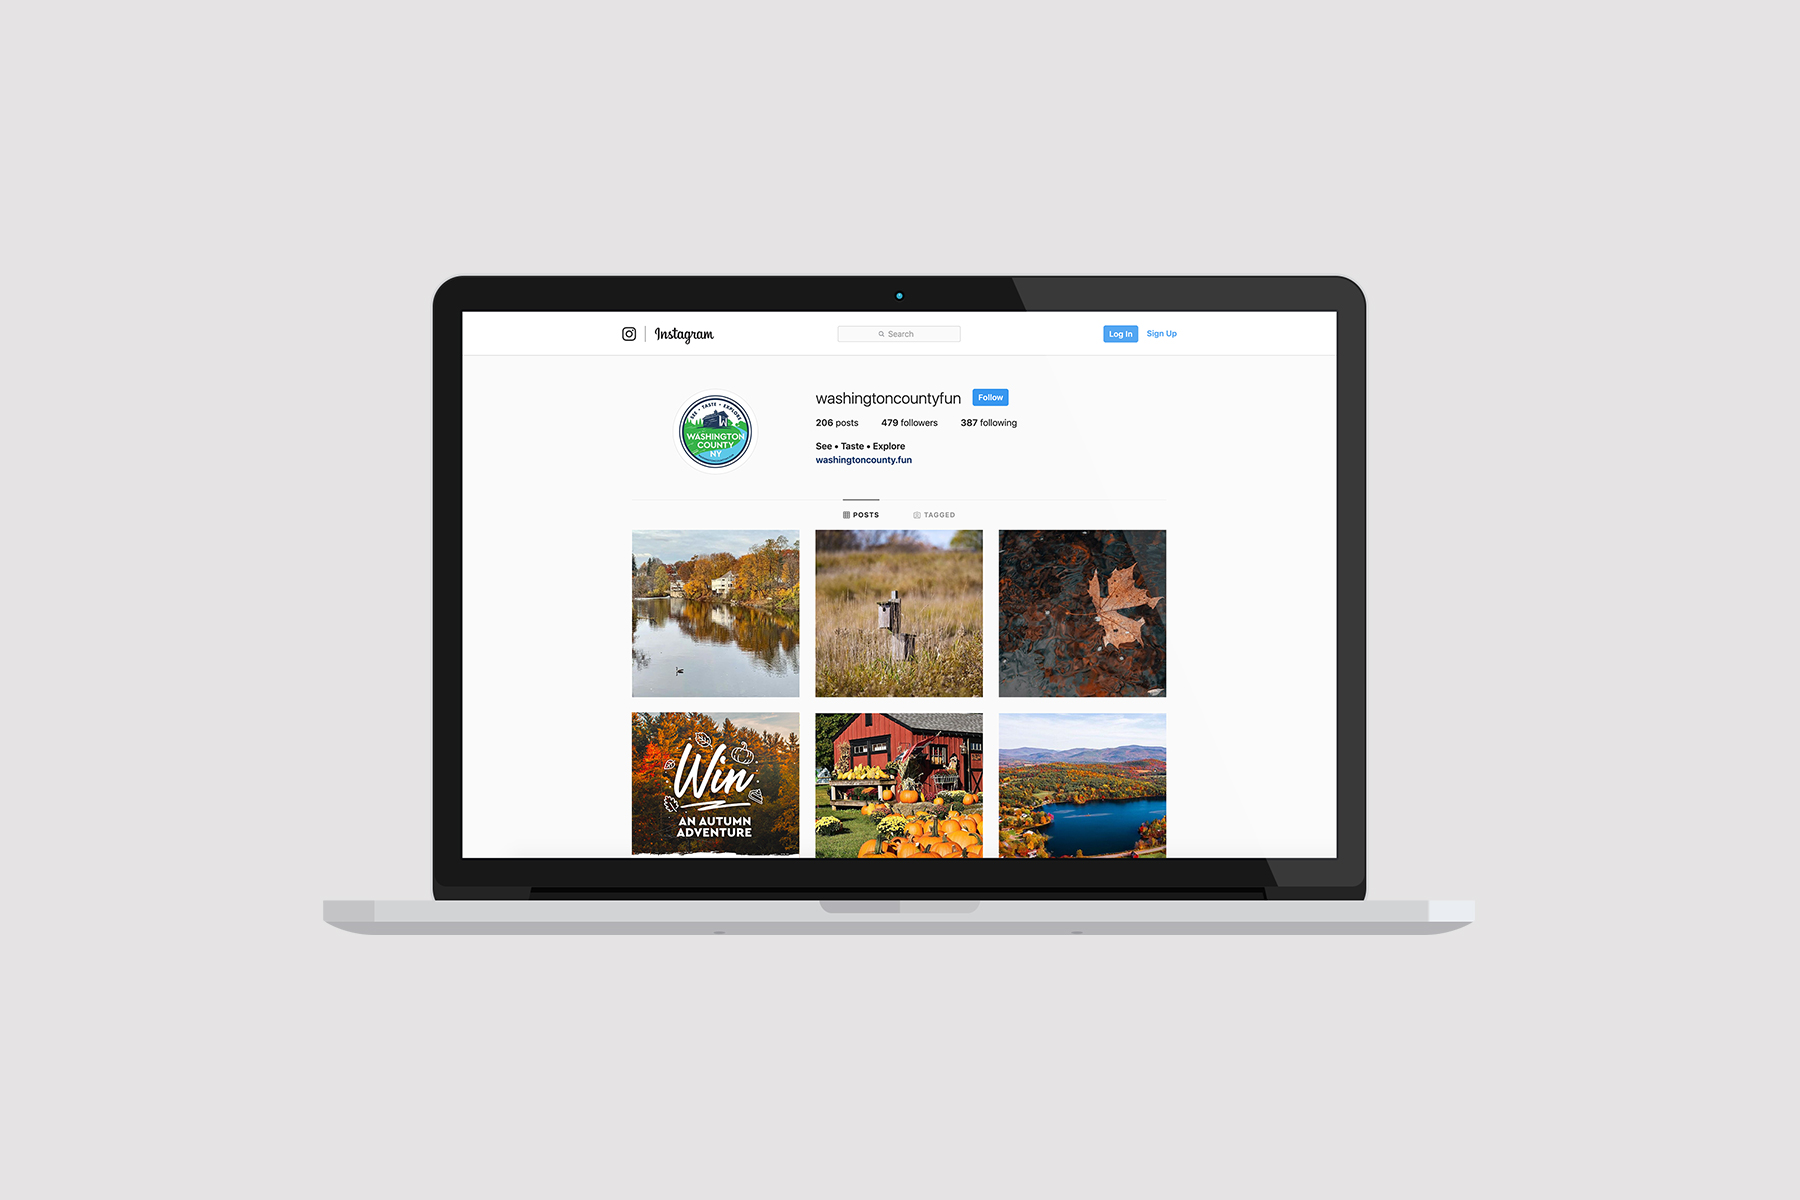 content agency MacBook with social media instagram page